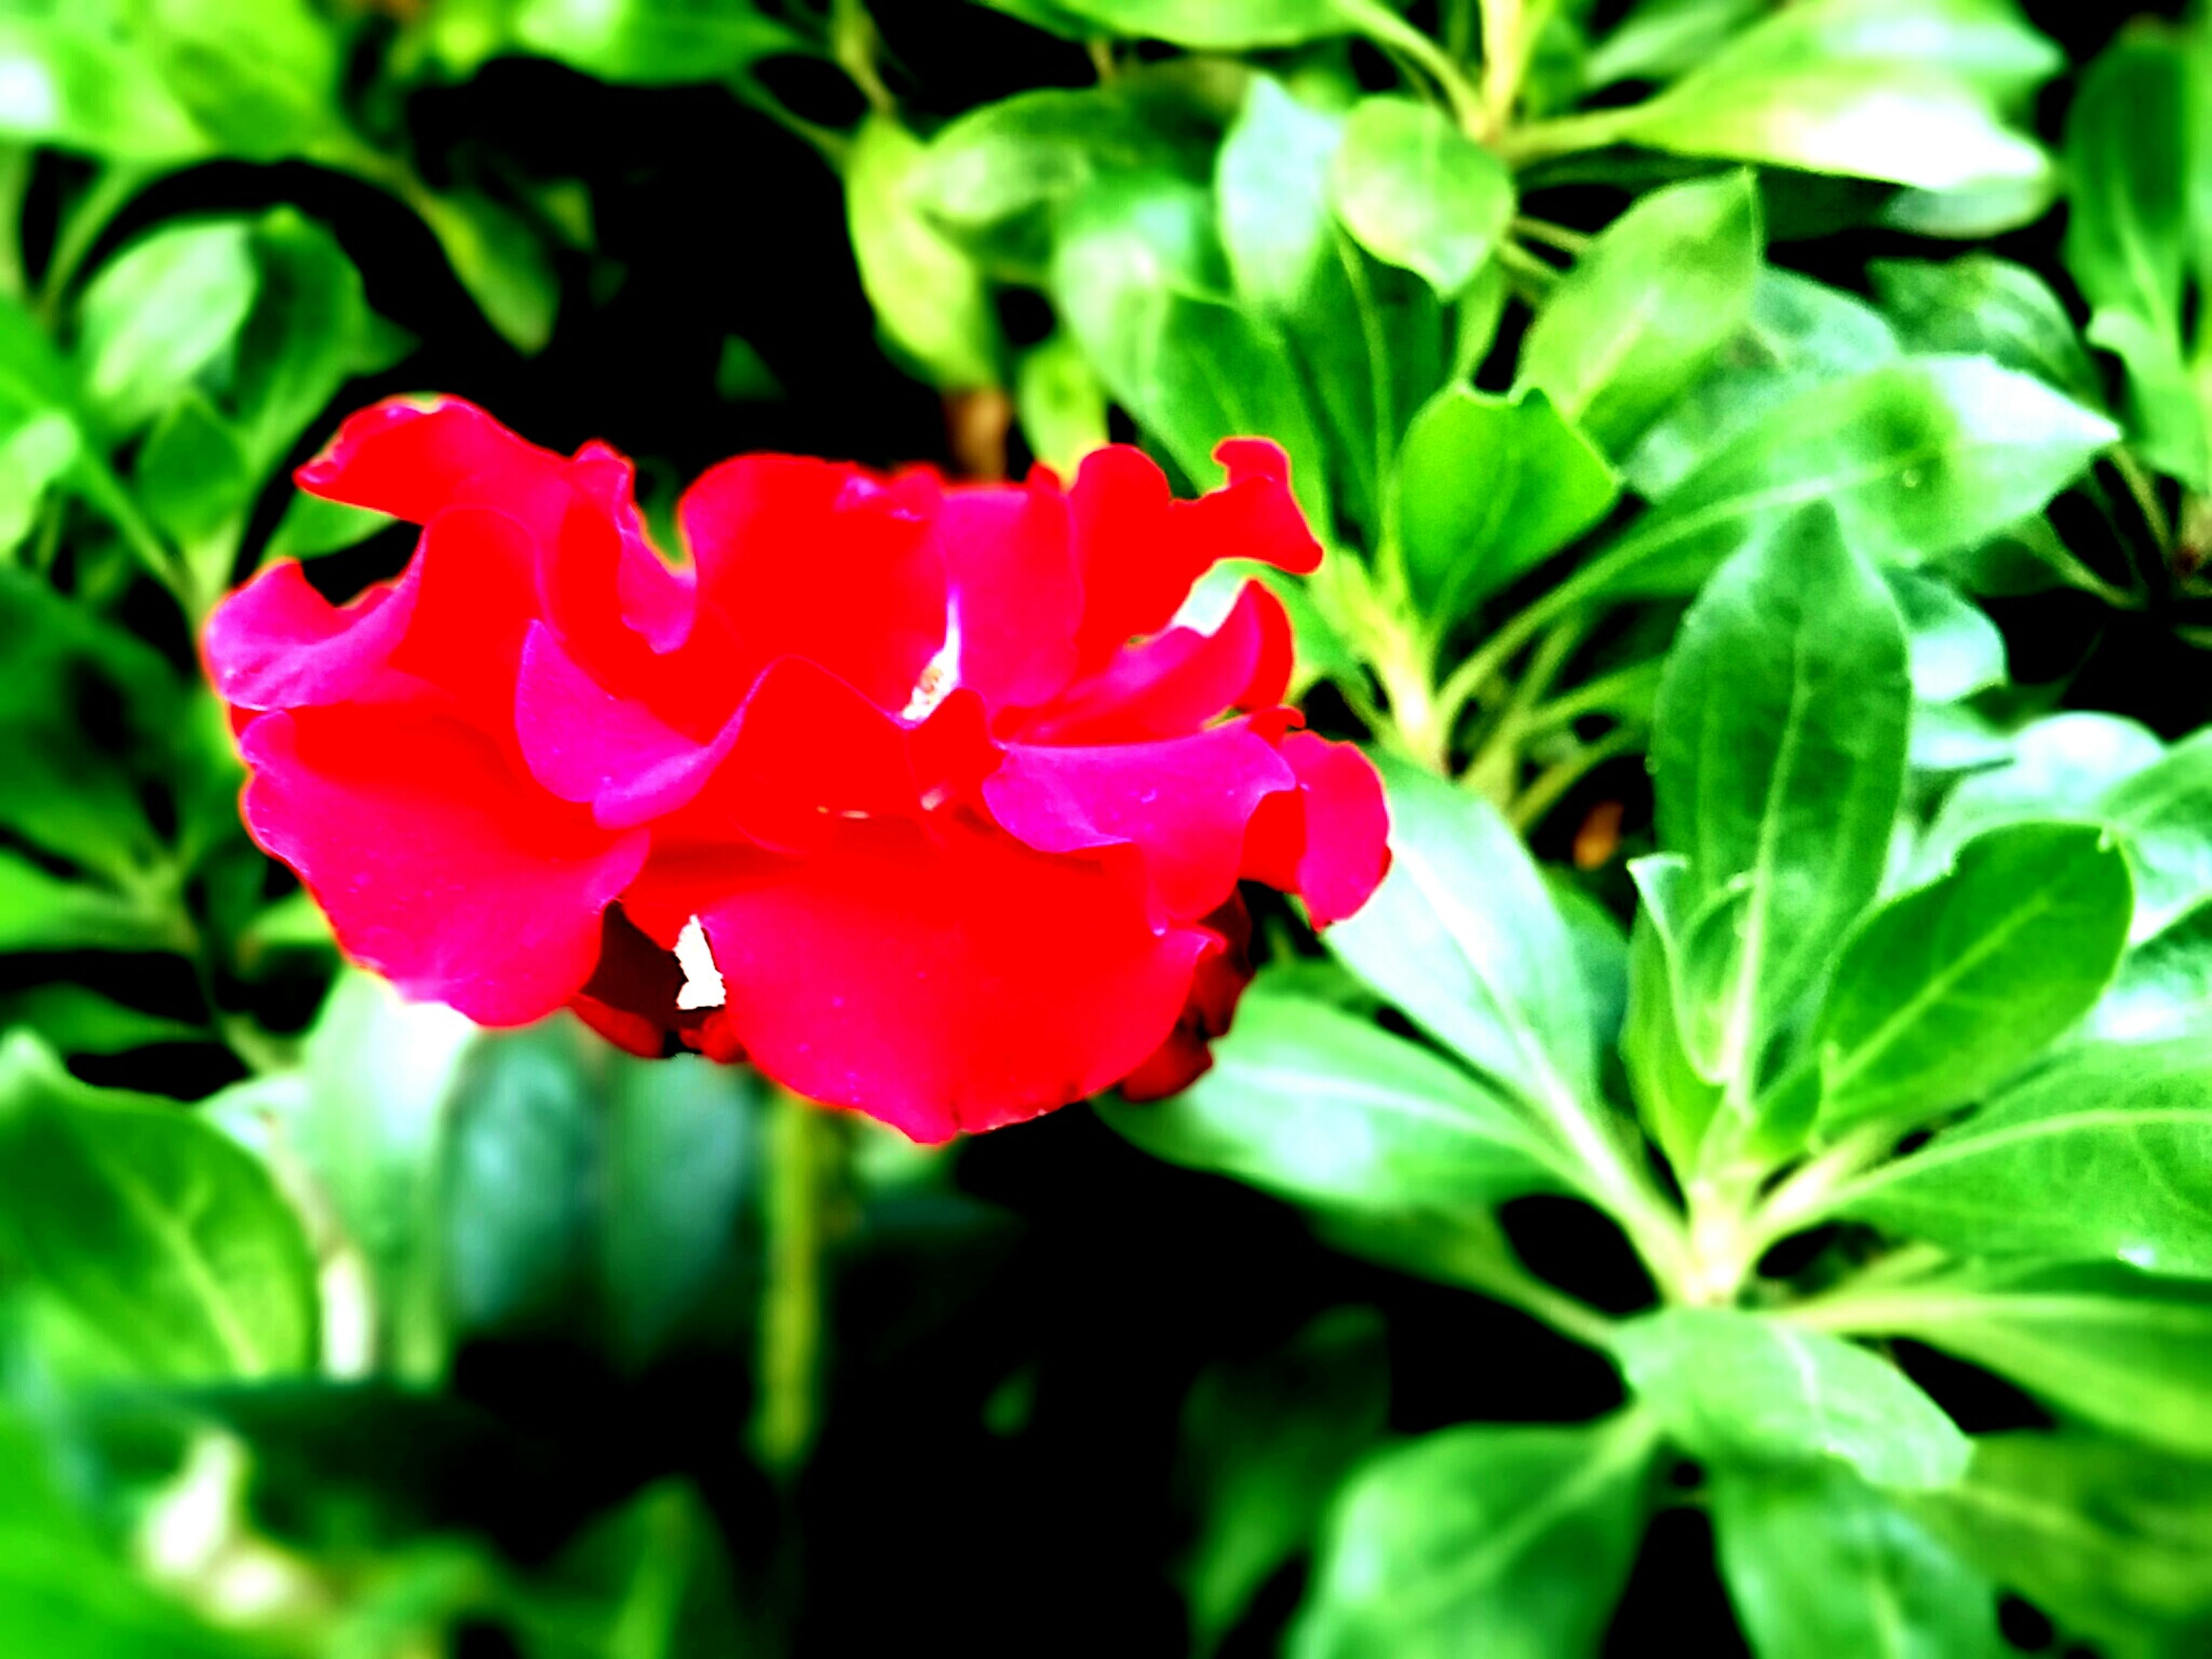 flower, petal, freshness, flower head, growth, fragility, beauty in nature, leaf, blooming, plant, pink color, close-up, red, nature, focus on foreground, green color, in bloom, park - man made space, single flower, blossom